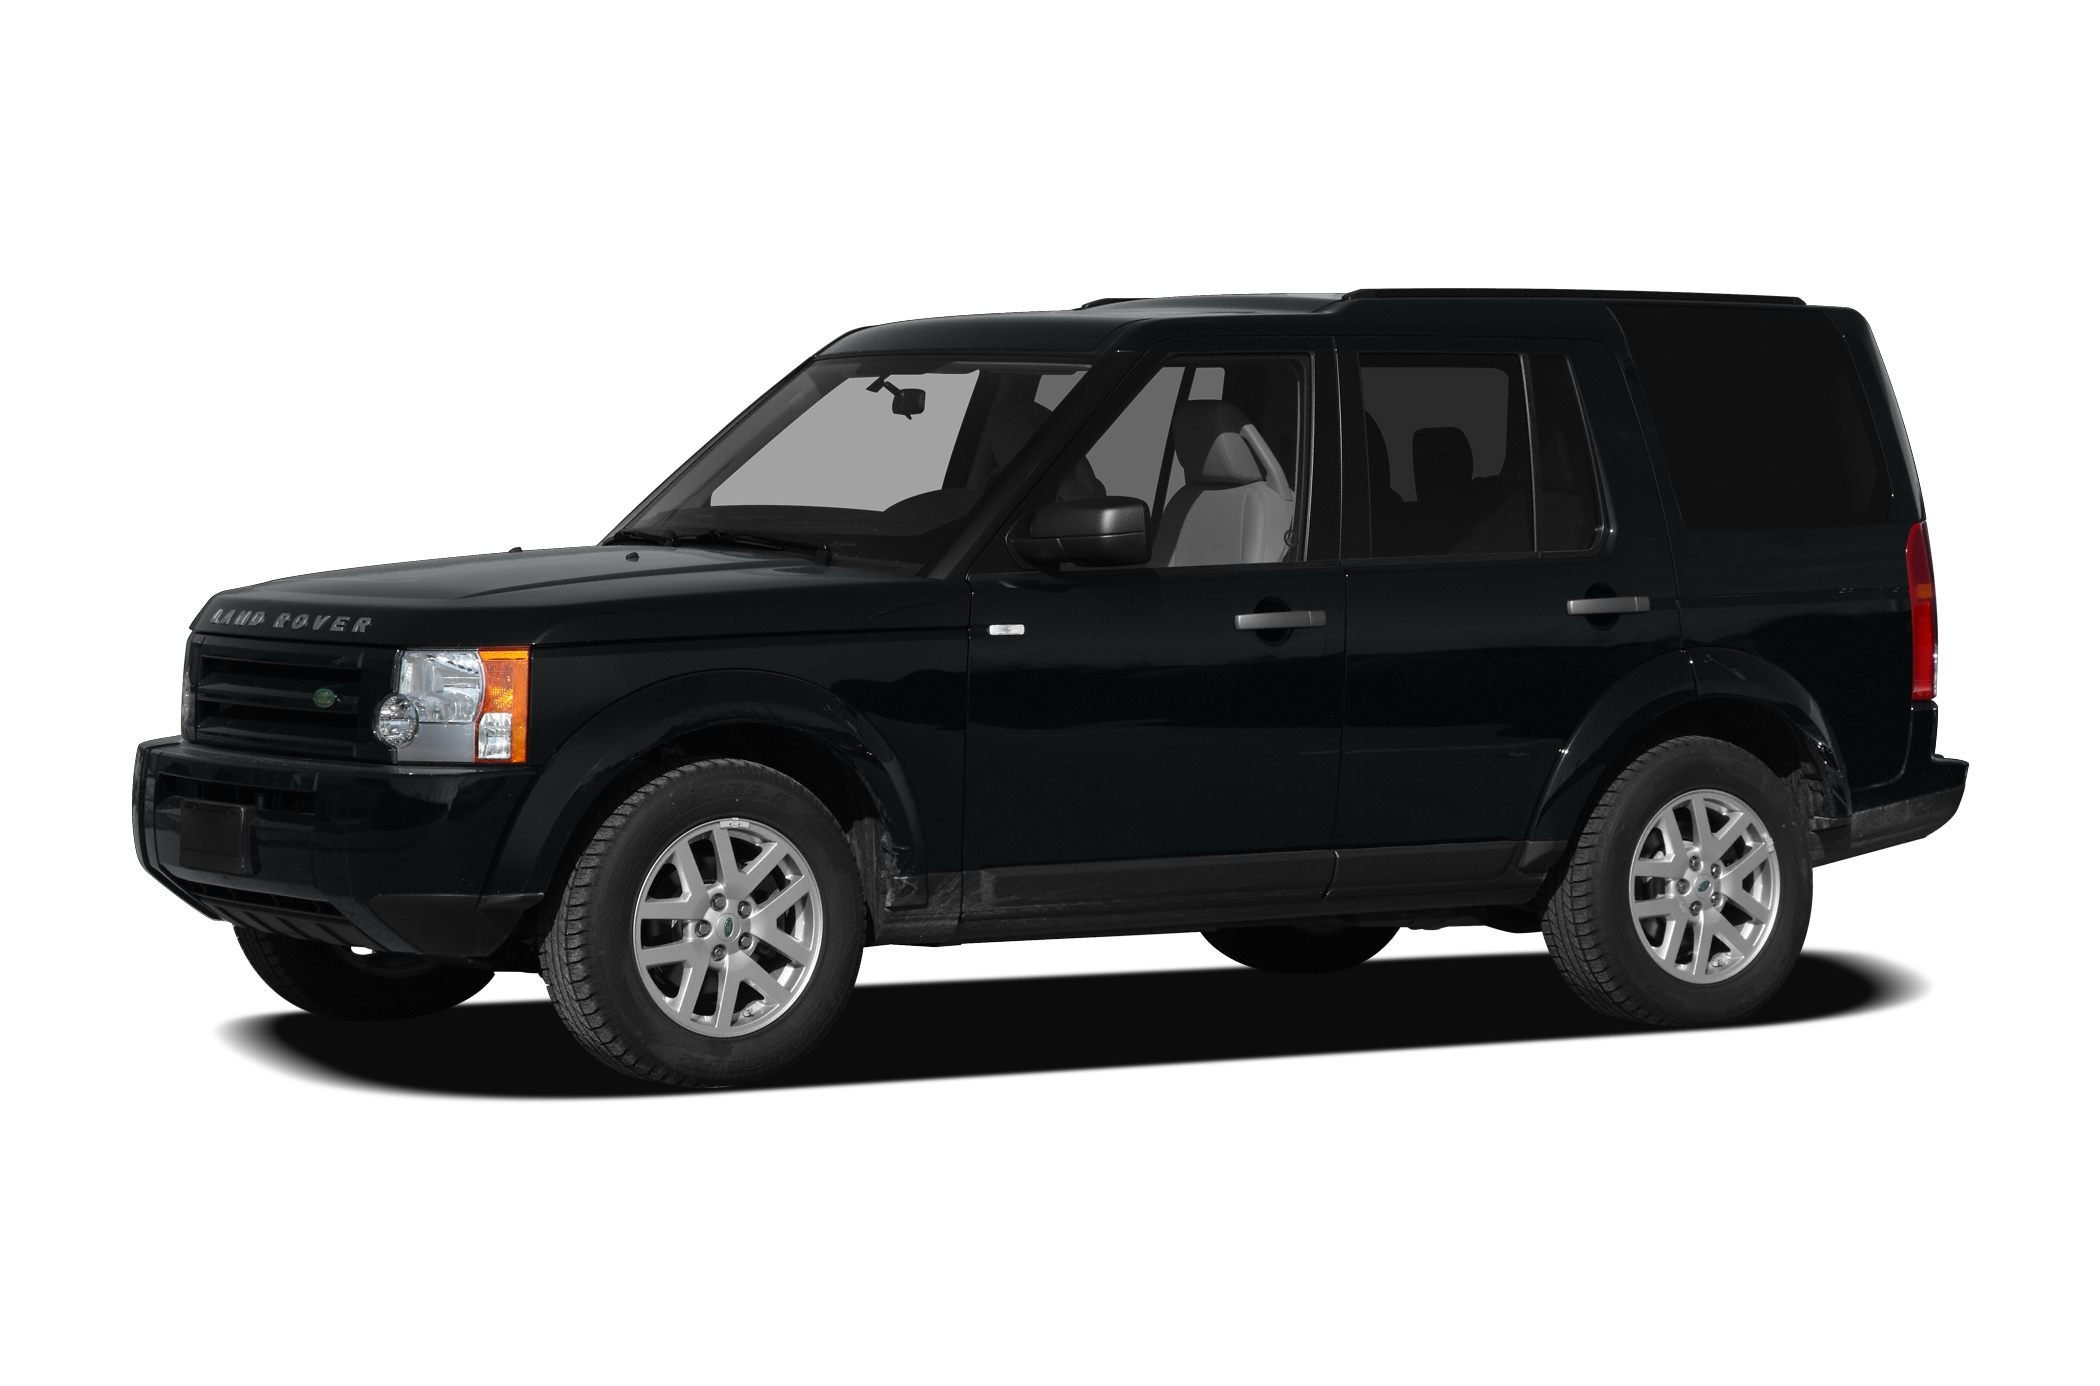 2009 Land Rover LR3 SUV for sale in Menomonie for $22,995 with 95,477 miles